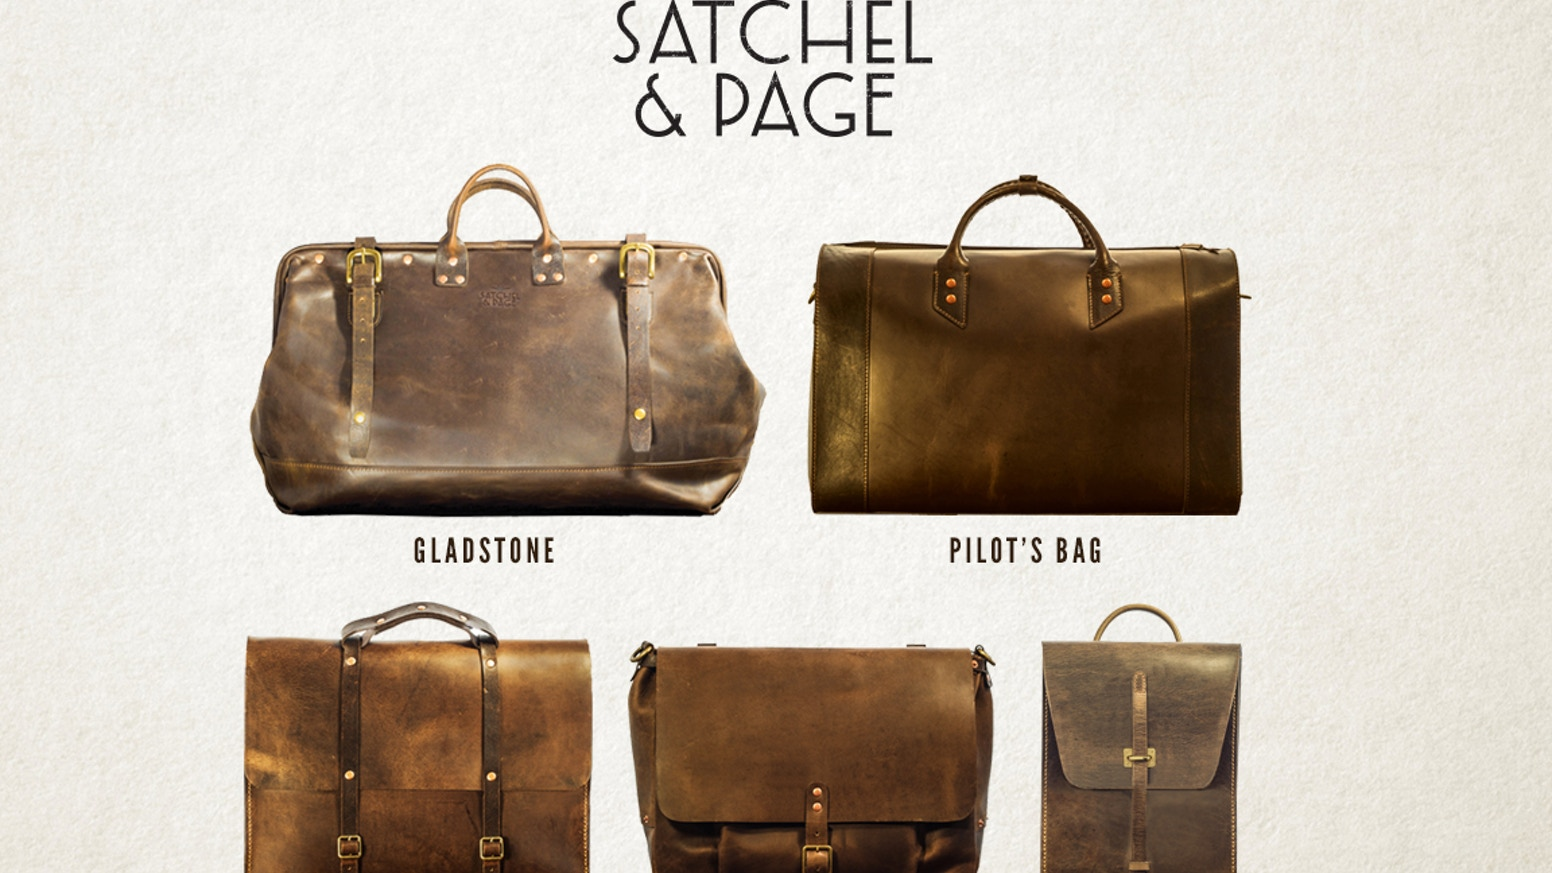 Satchel   Page - Leather Bags Guaranteed For Life by Satchel   Page ... 1b409185a5891